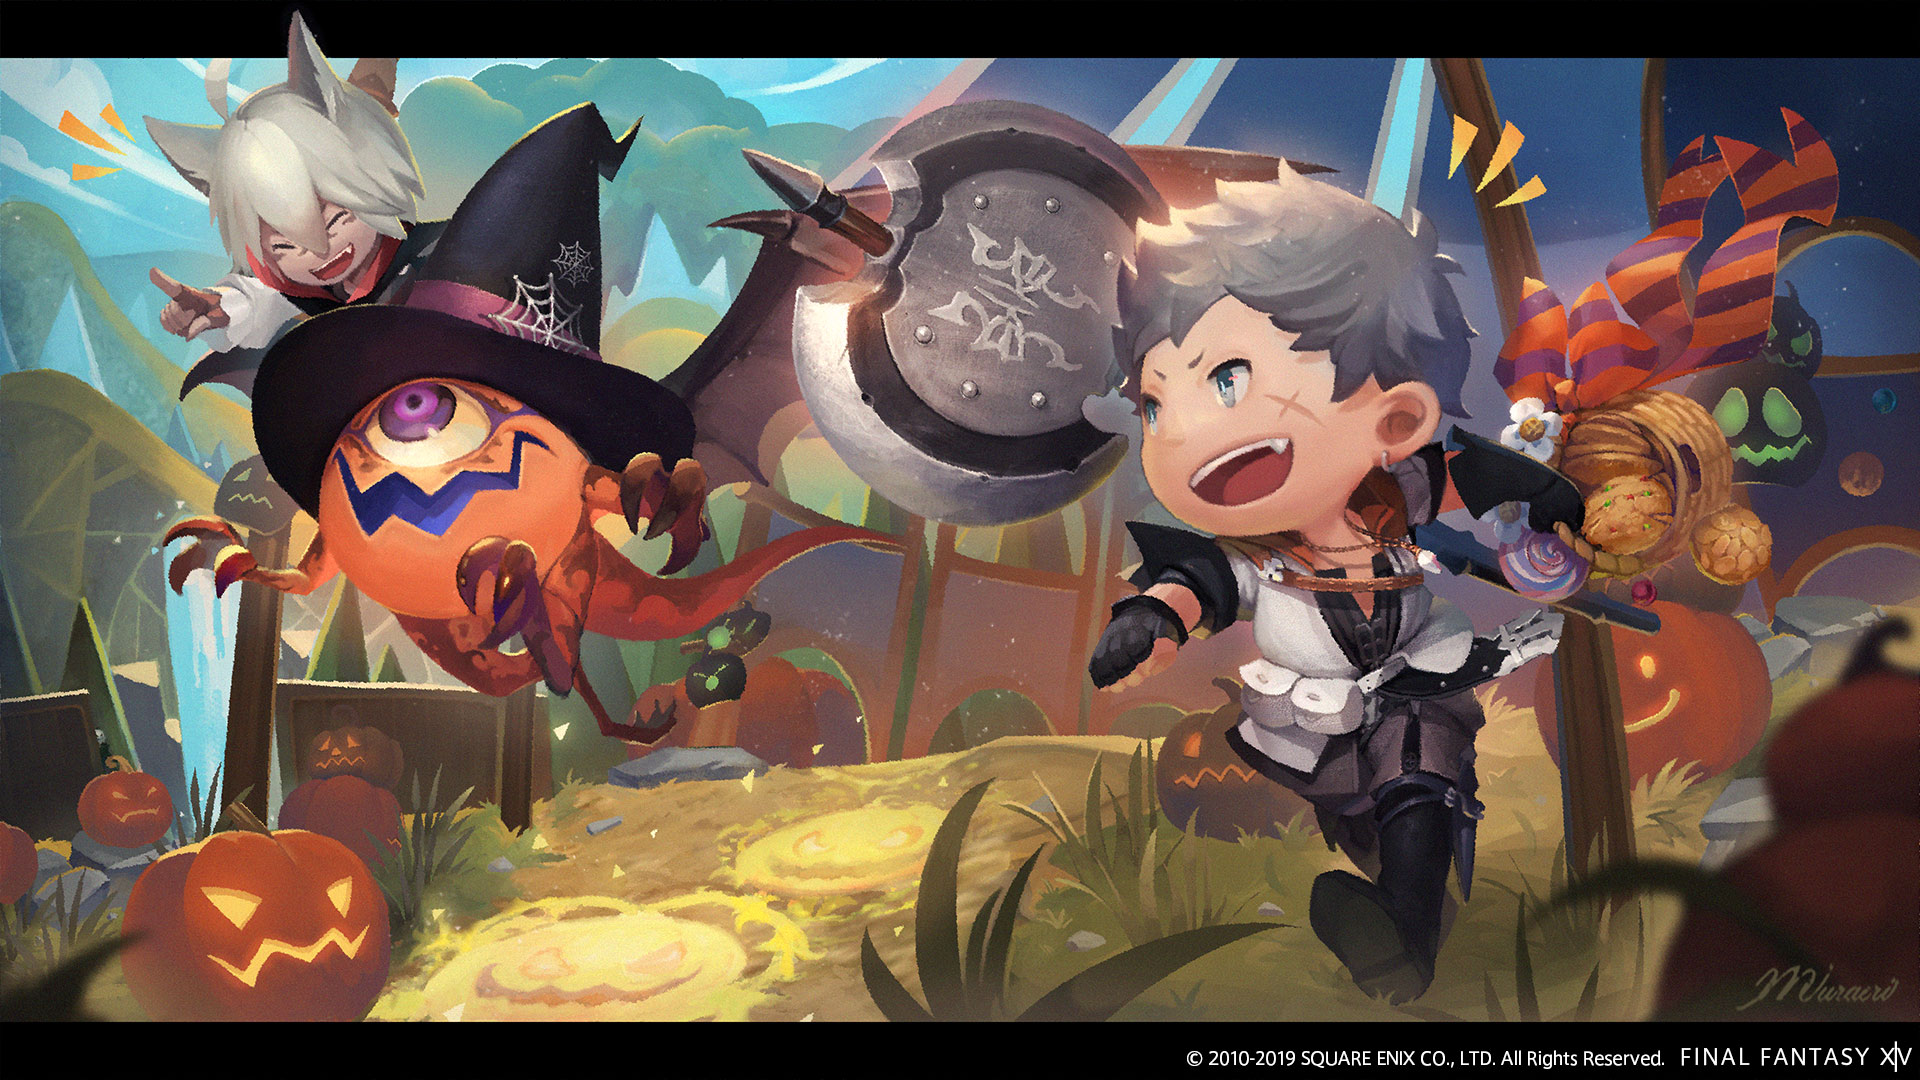 Ffxi Halloween 2020 Final Fantasy XIV Halloween Event To Start October 17